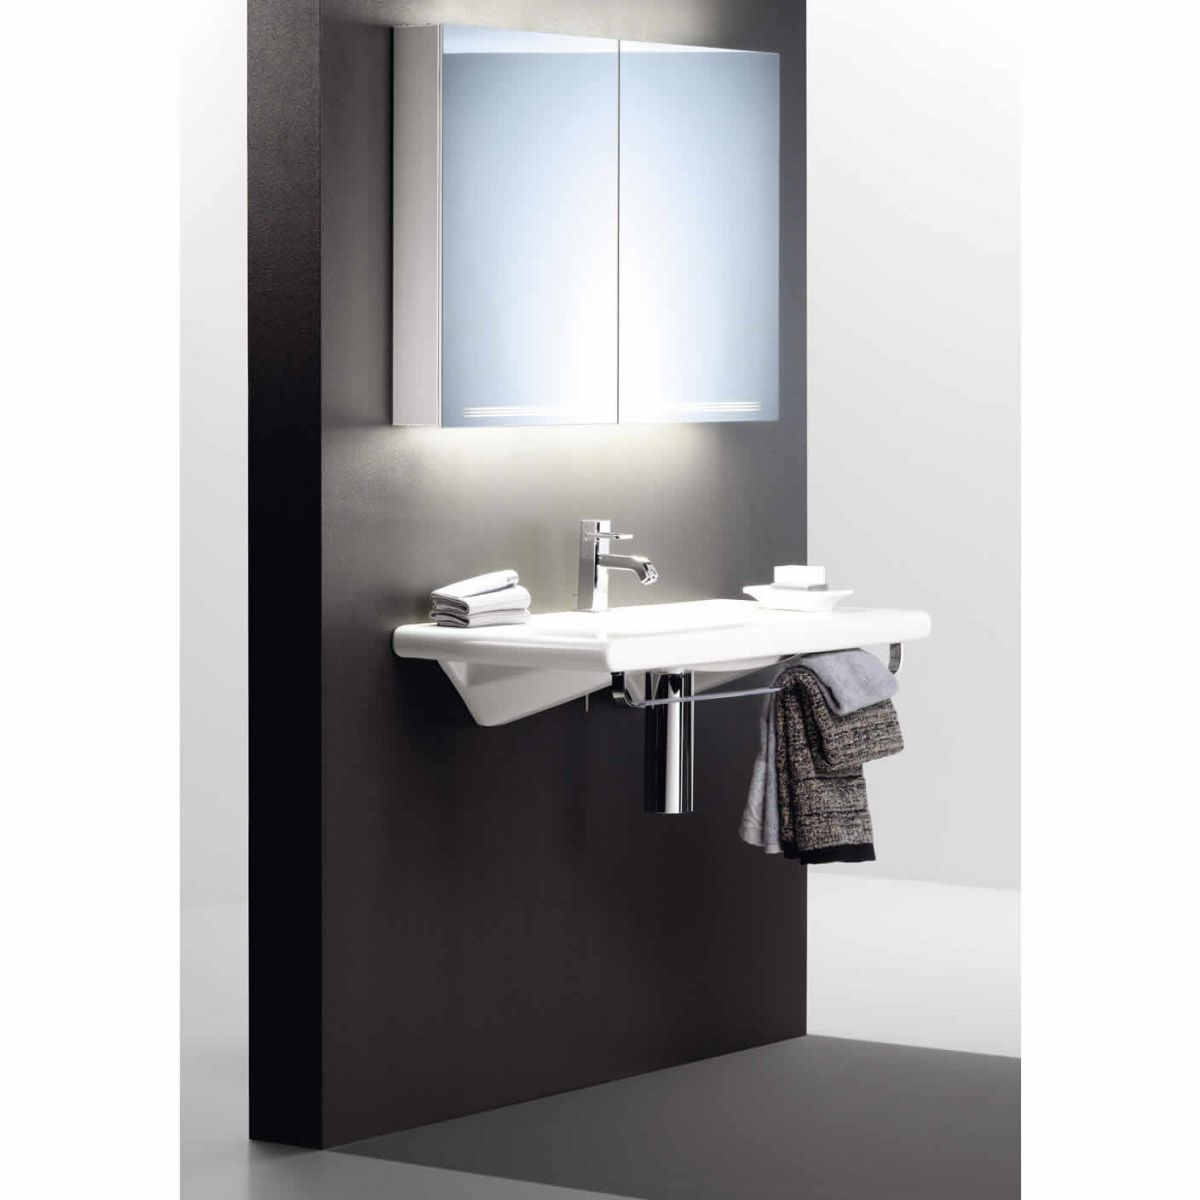 picture of a mirrored bathroom cabinet